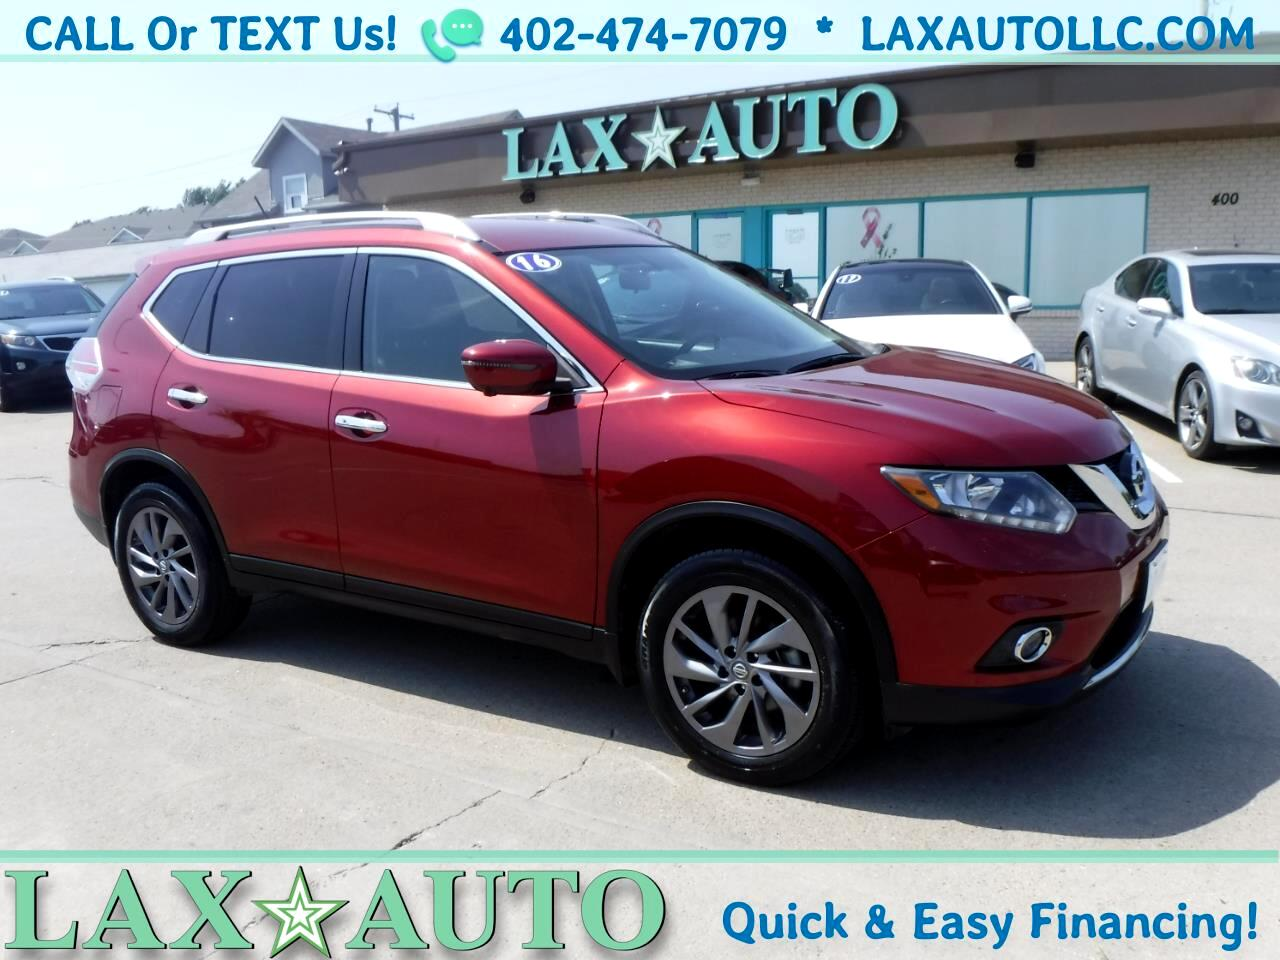 2016 Nissan Rogue SL SUV * 45k miles * Navi! Back-up Cam! Loaded! *